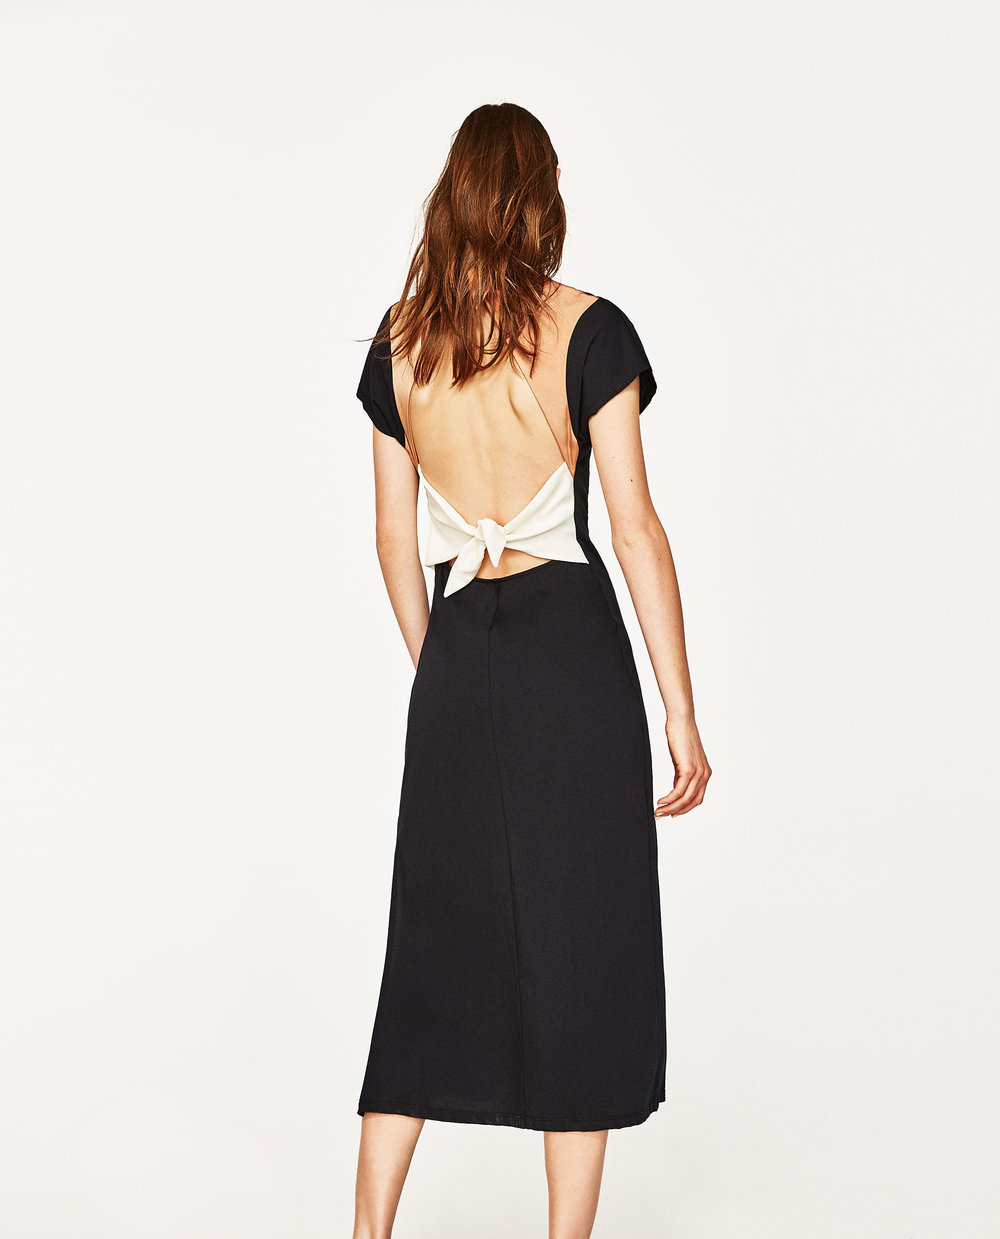 Long Dress with Knotted Back - Zara £29.99